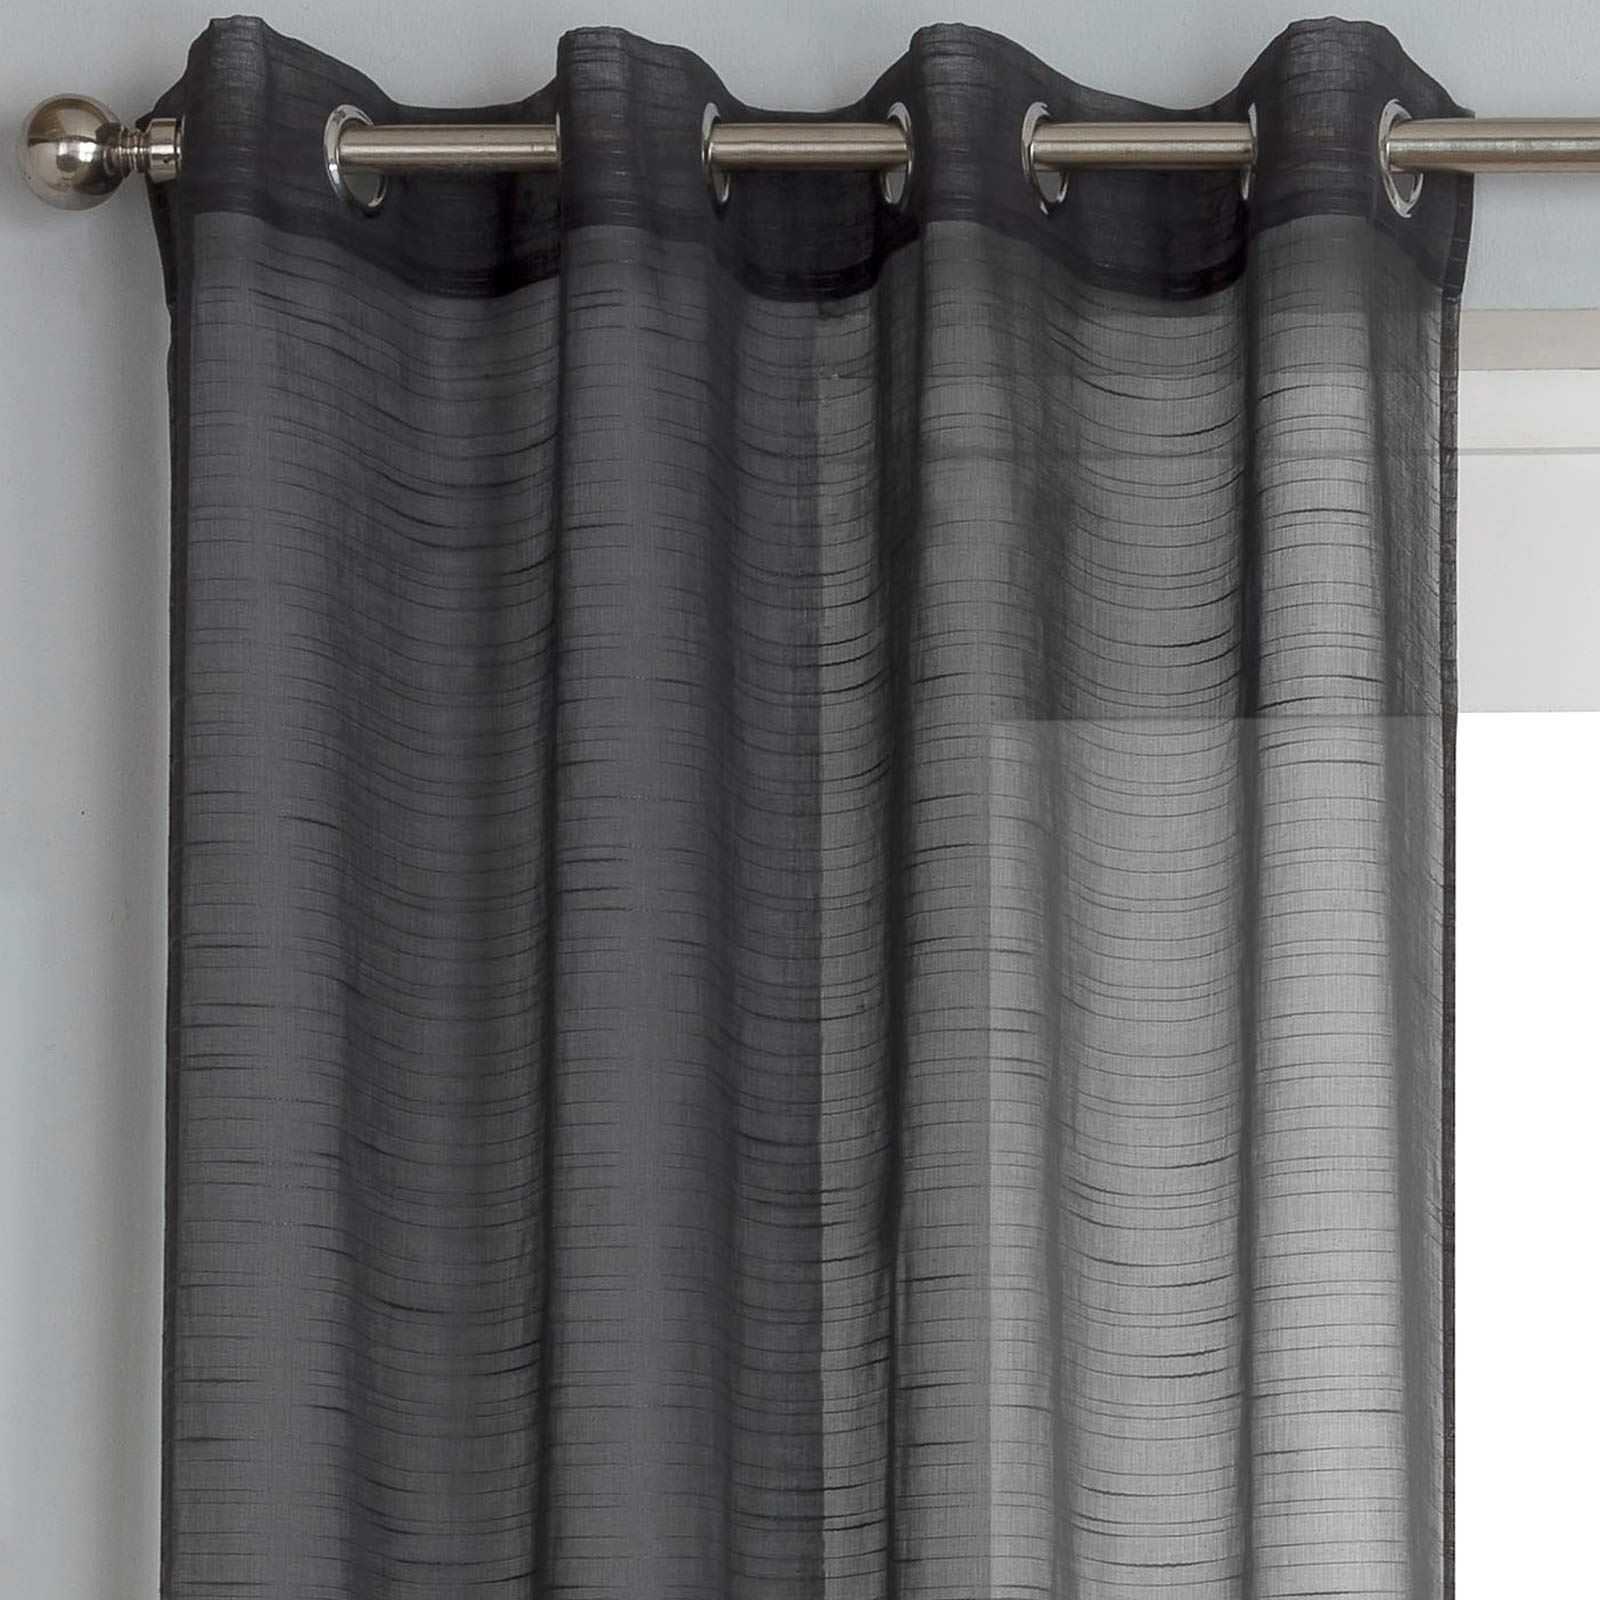 Silver Grey White Voile Eyelet Curtains Ring Top Sparkle